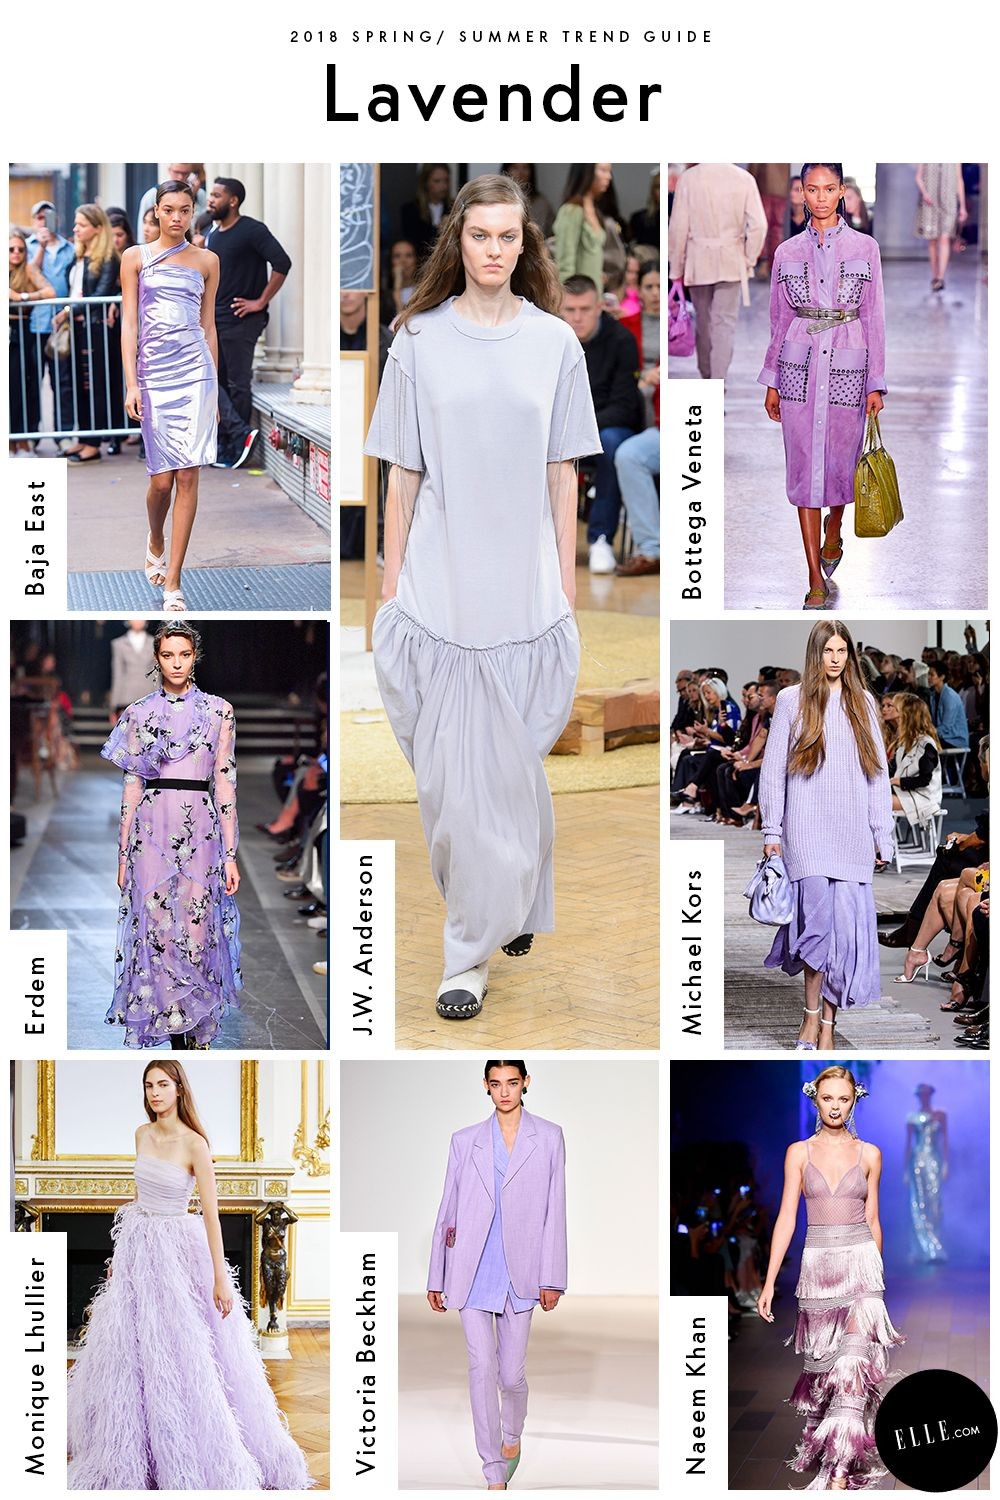 b52db53b0 What is the fashion for spring 2018